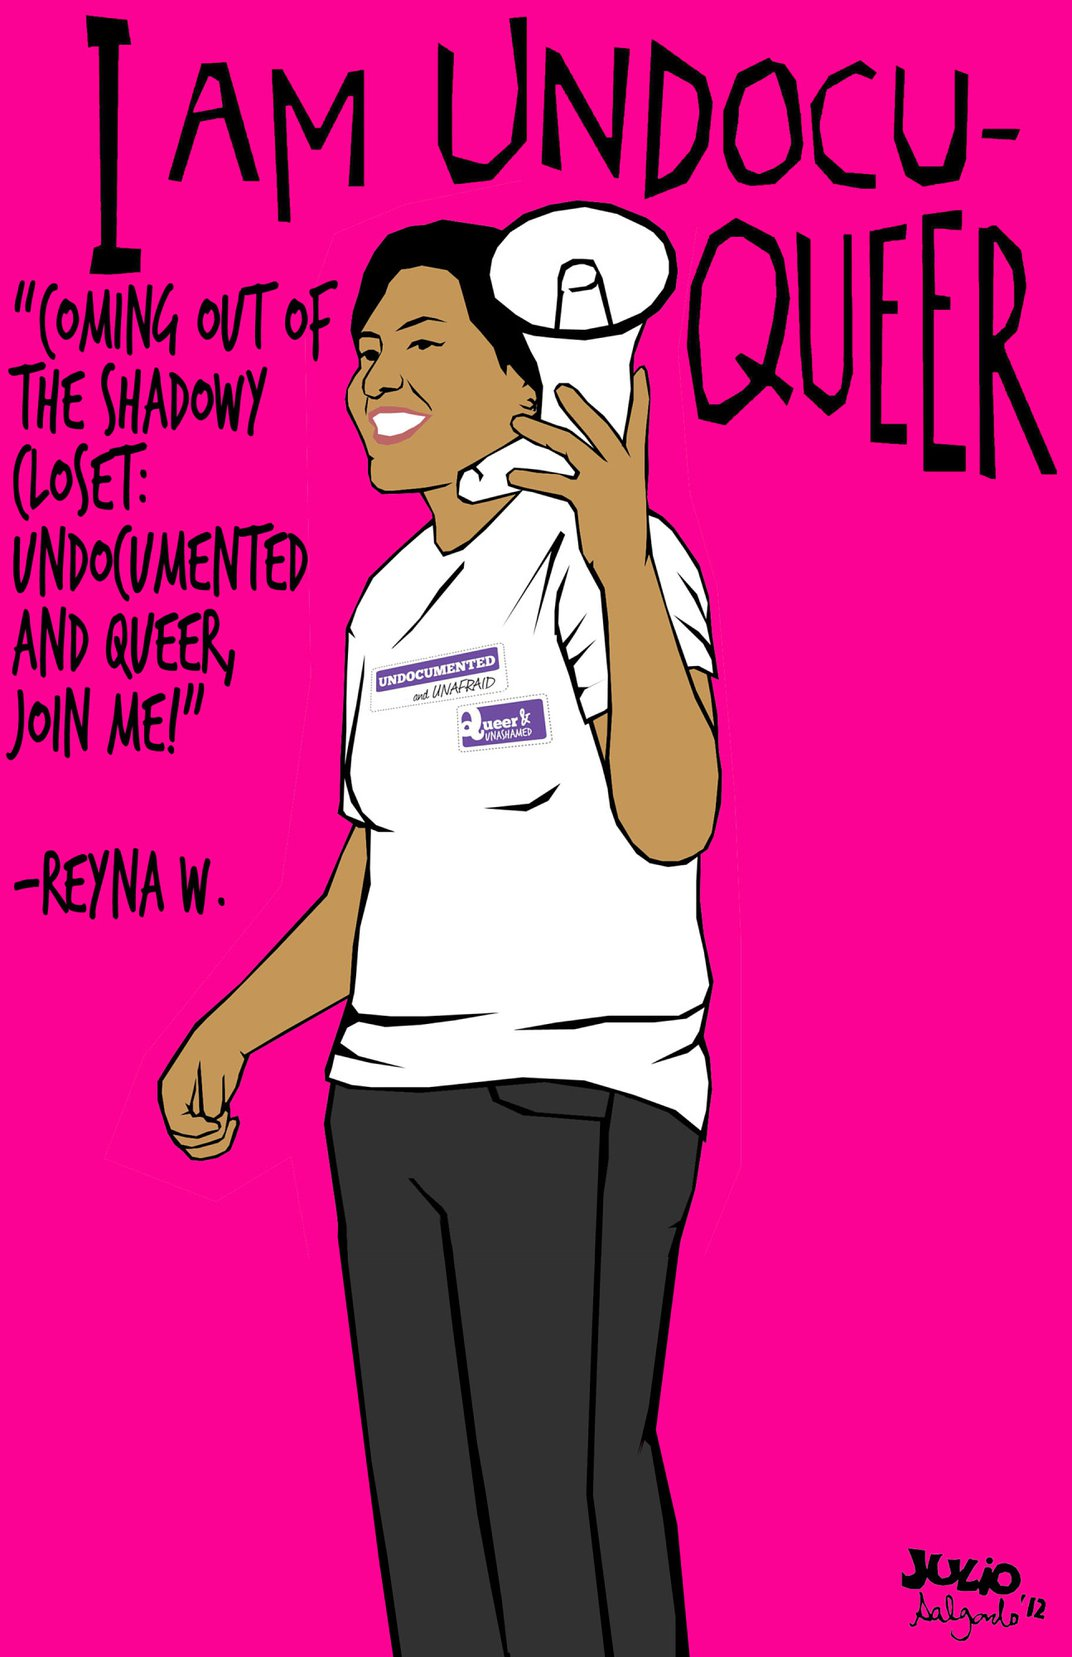 """An illustration of a person holding a bullhorn stands in front of a pink background  with the text """"I Am Undocuqueer"""""""